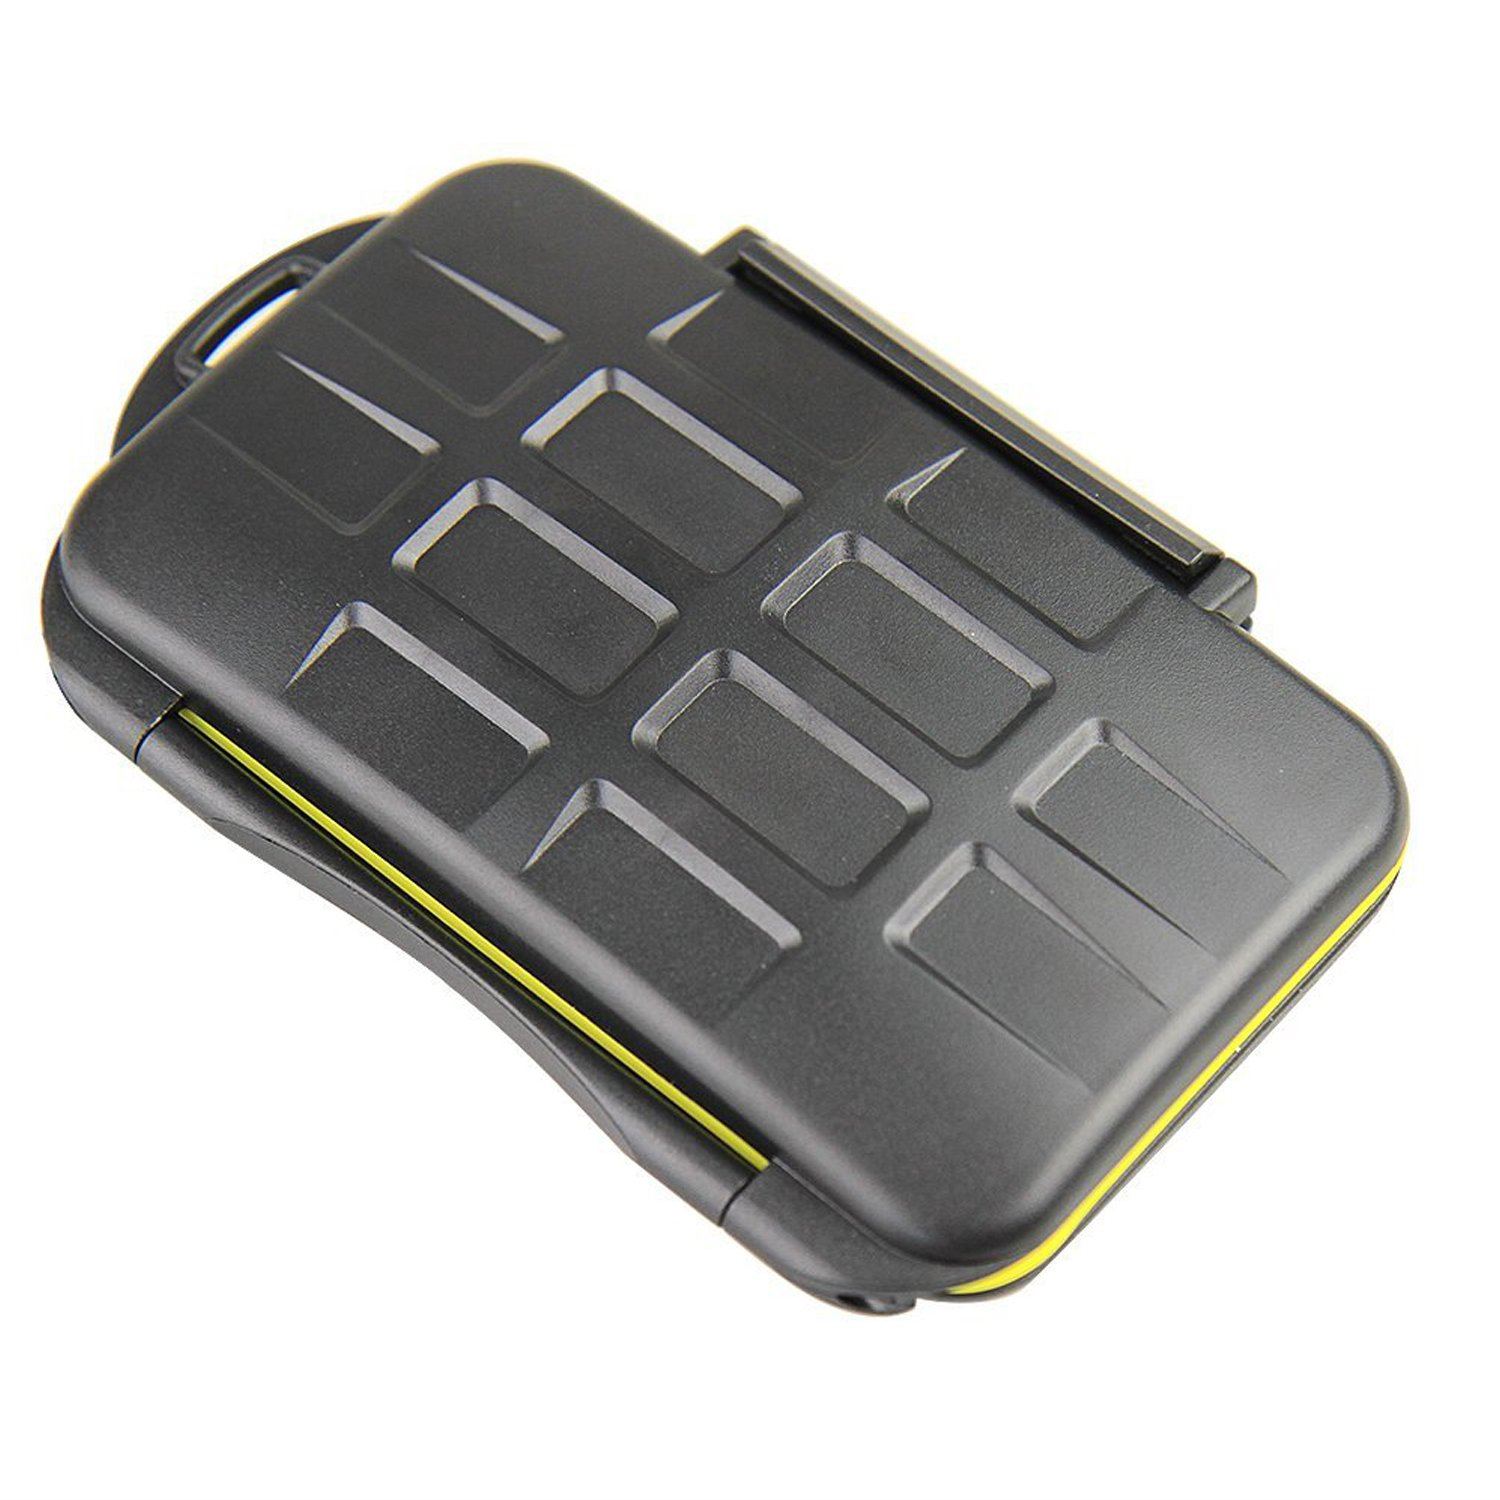 GoFriend Water-Resistant 24 Slots Memory Card Carrying Cases Professional Anti-shock Holder Storage SD SDHC SDXC and Micro SD TF Cards Protector Cover With Carabiner & Card Reader by GoFriend (Image #6)